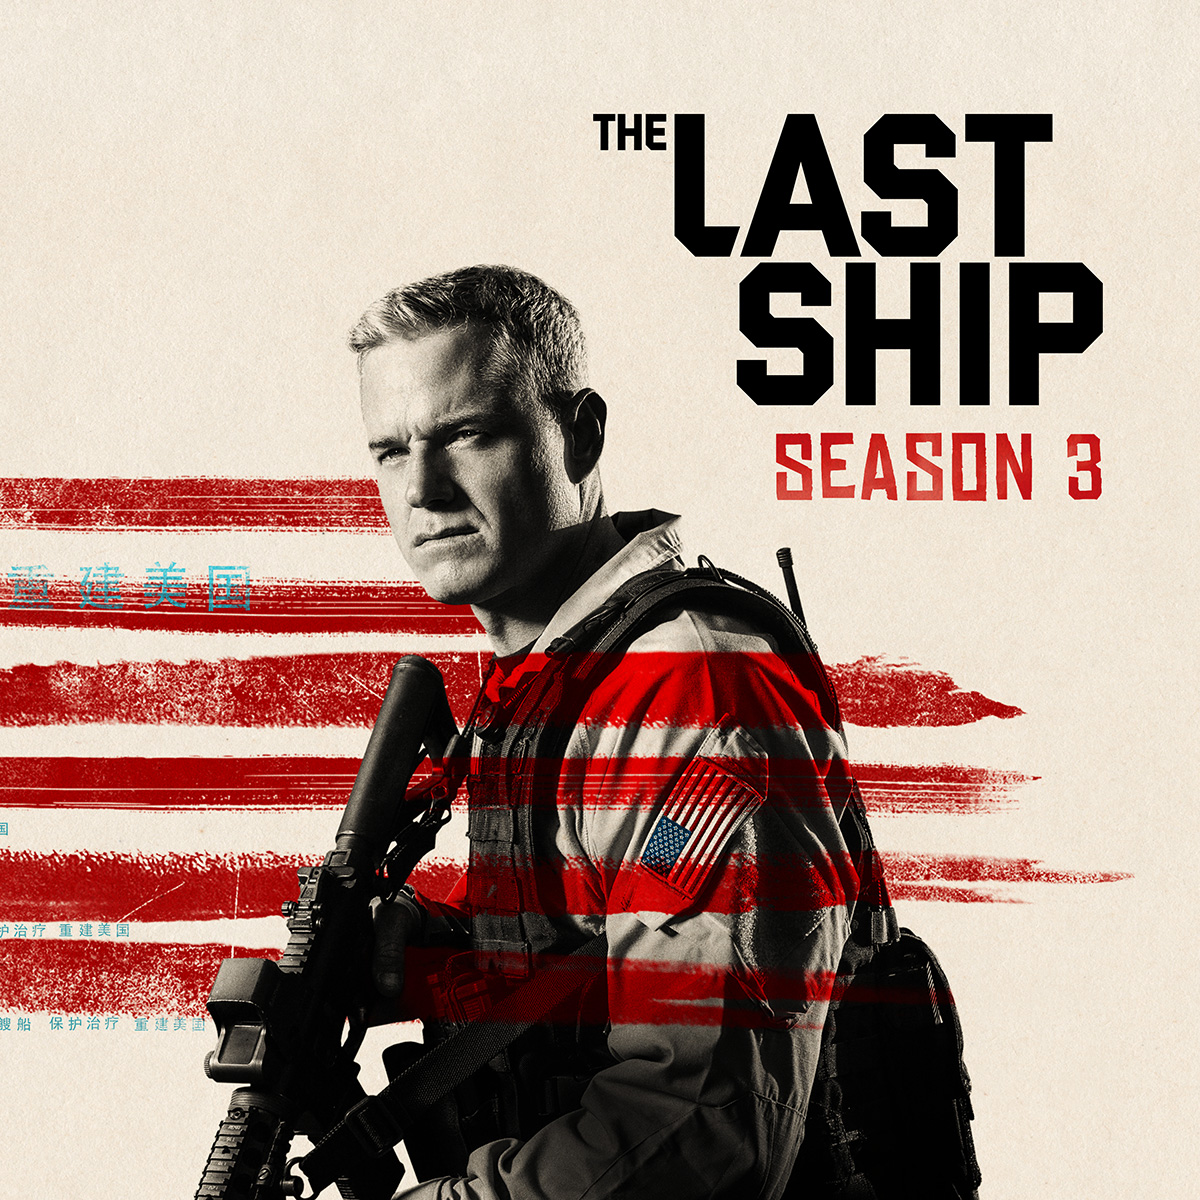 Season 3 2017 Ep 13 123movies To: The Last Ship 2016: Season 3